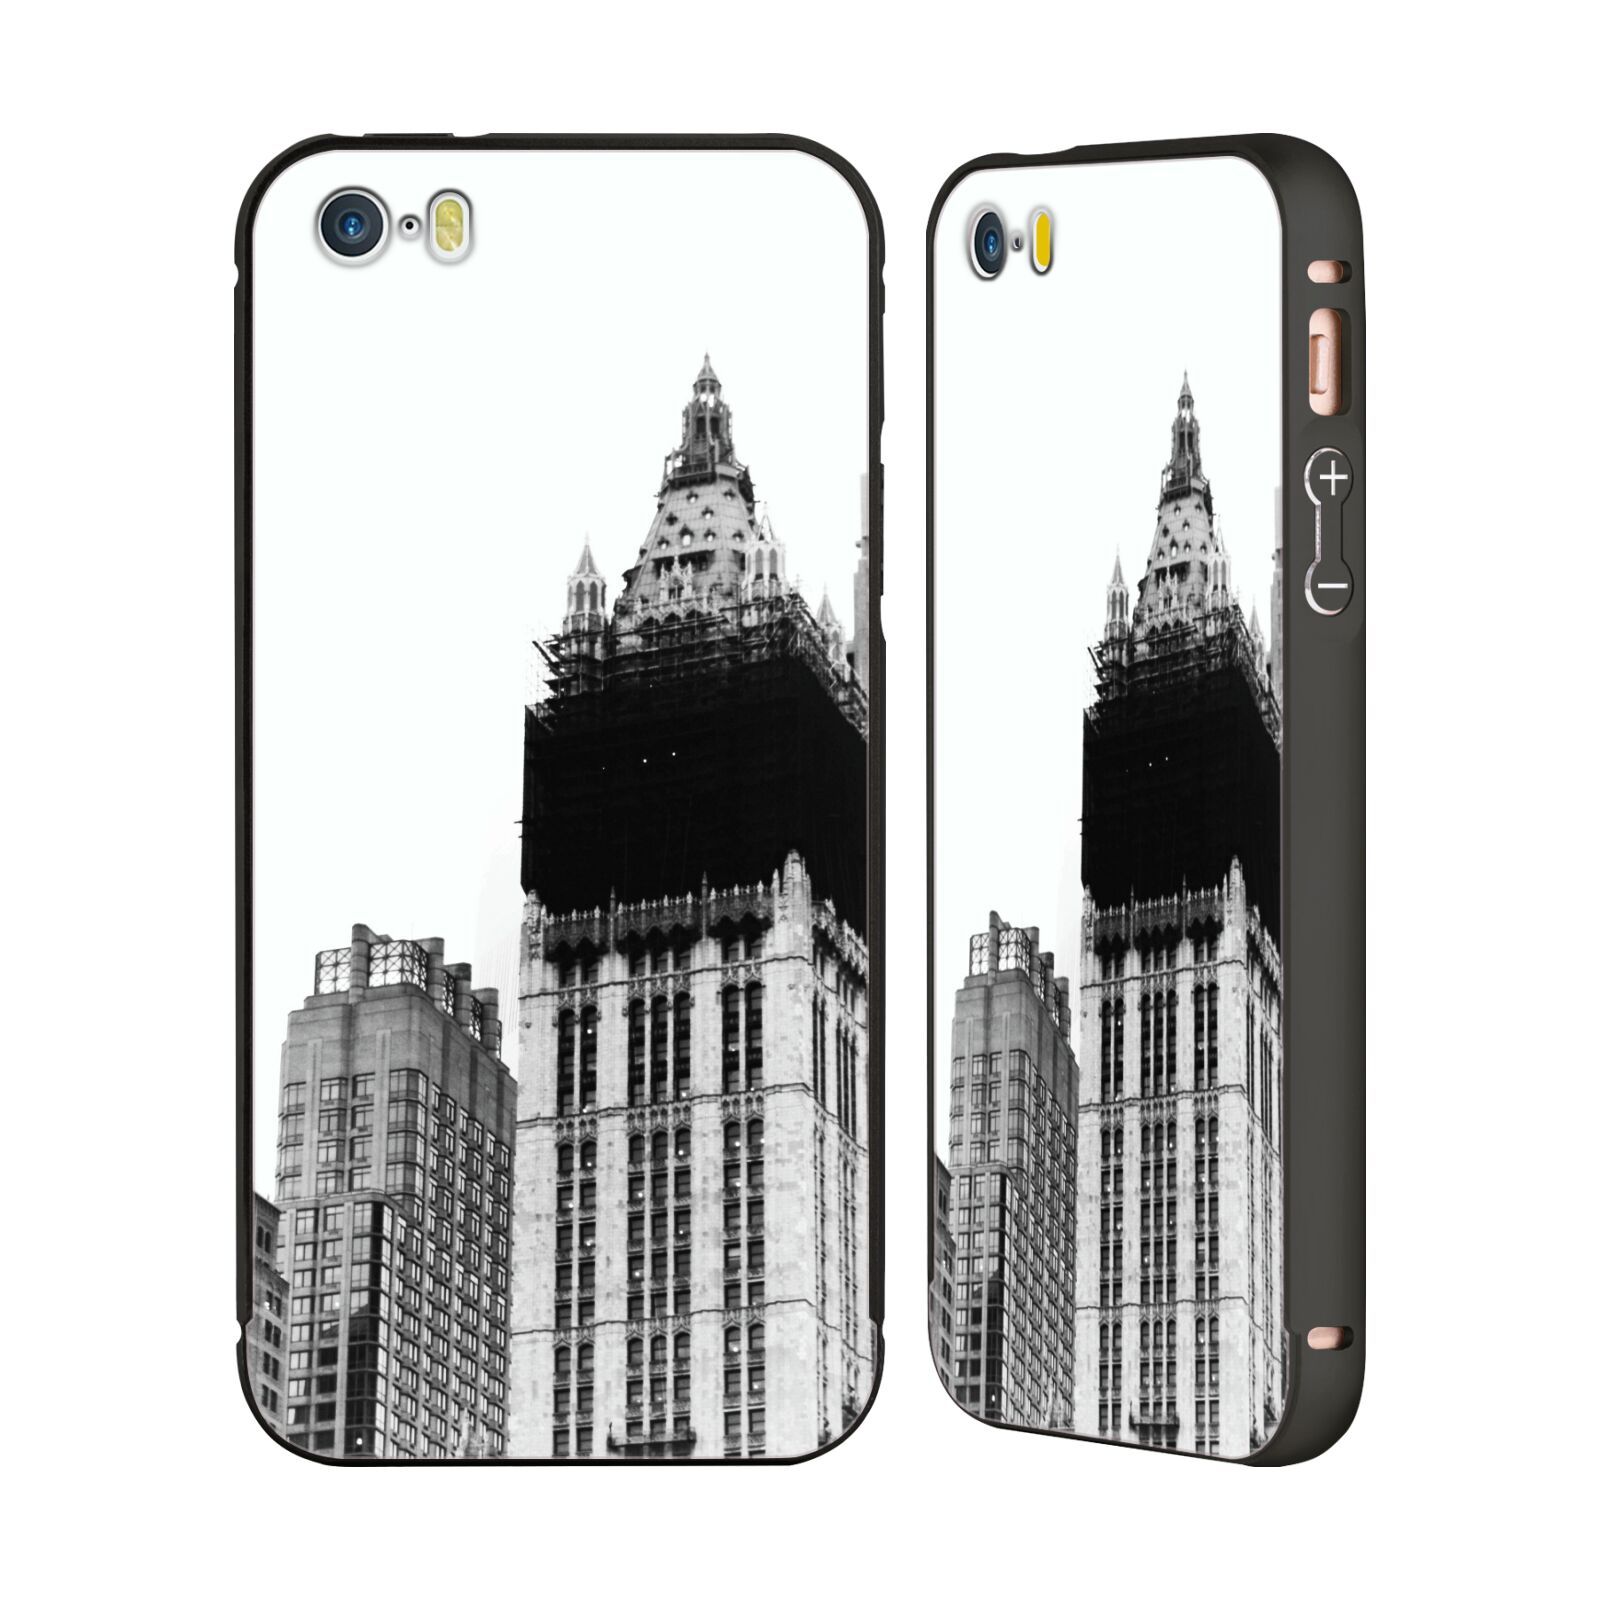 OFFICIAL-HAROULITA-BLACK-WHITE-2-BLACK-SLIDER-CASE-FOR-APPLE-iPHONE-PHONES